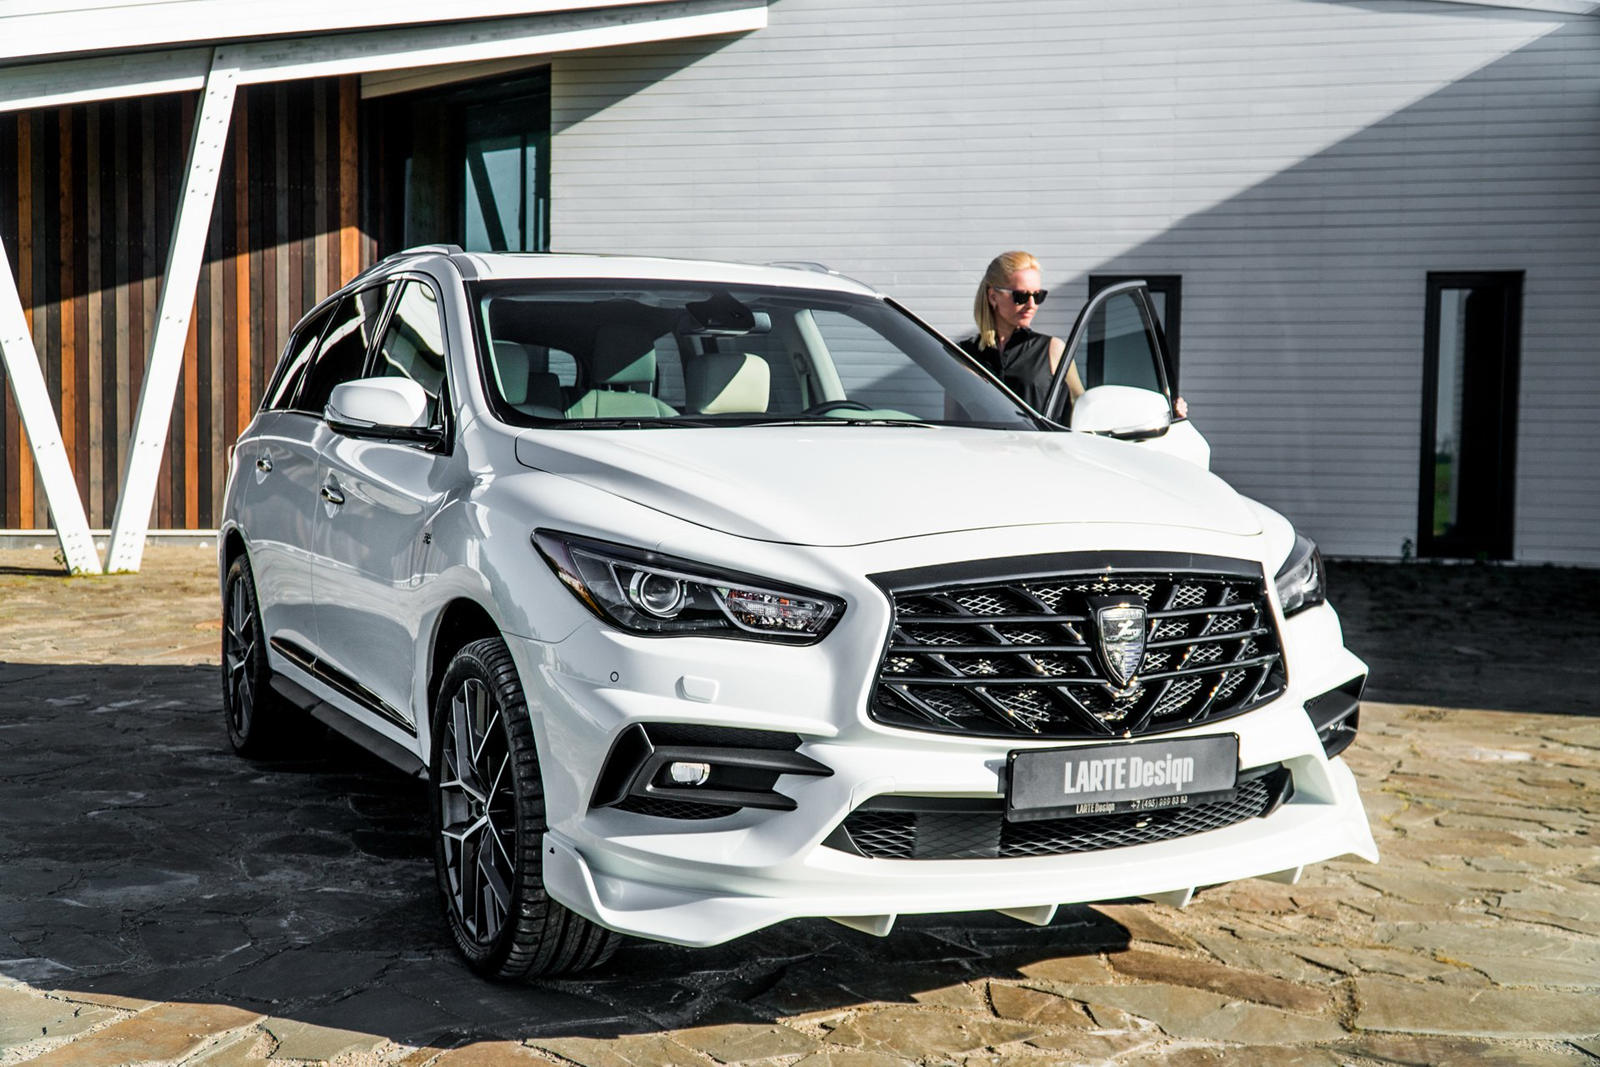 2020 Infiniti Qx60 Tries On An Aggressive Body Kit Carbuzz